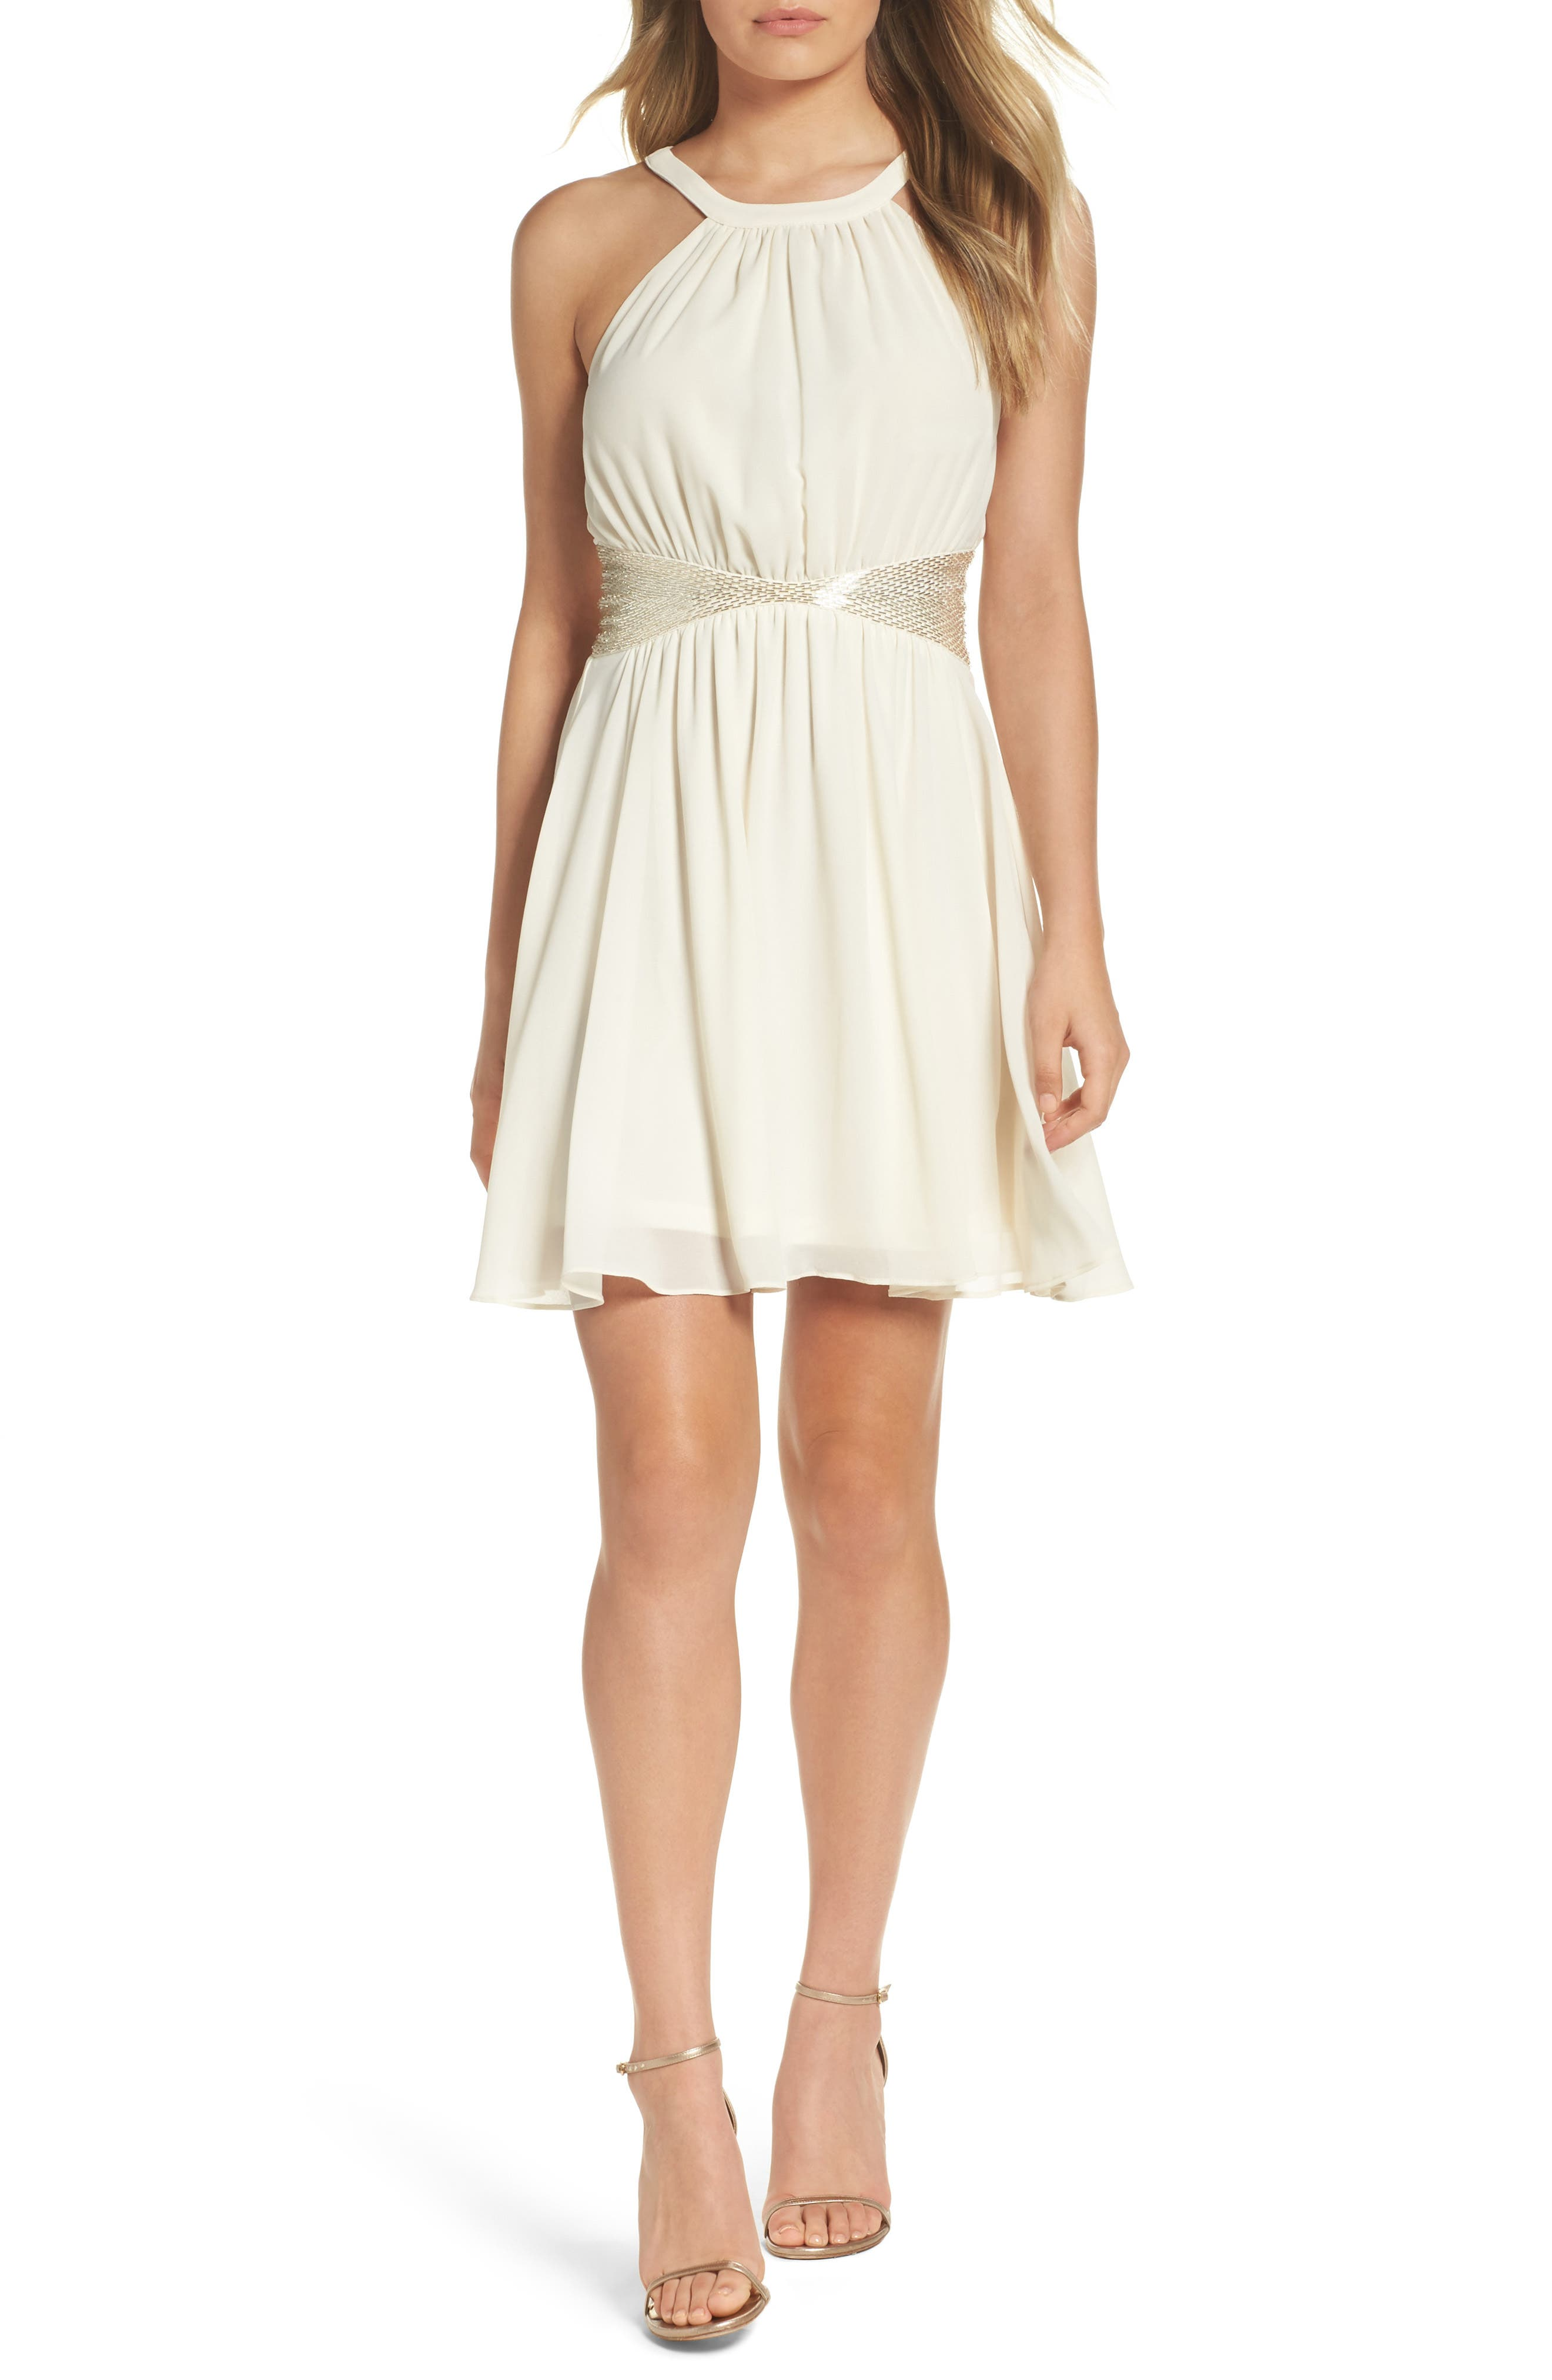 One More Night Beaded Skater Dress,                         Main,                         color, Cream